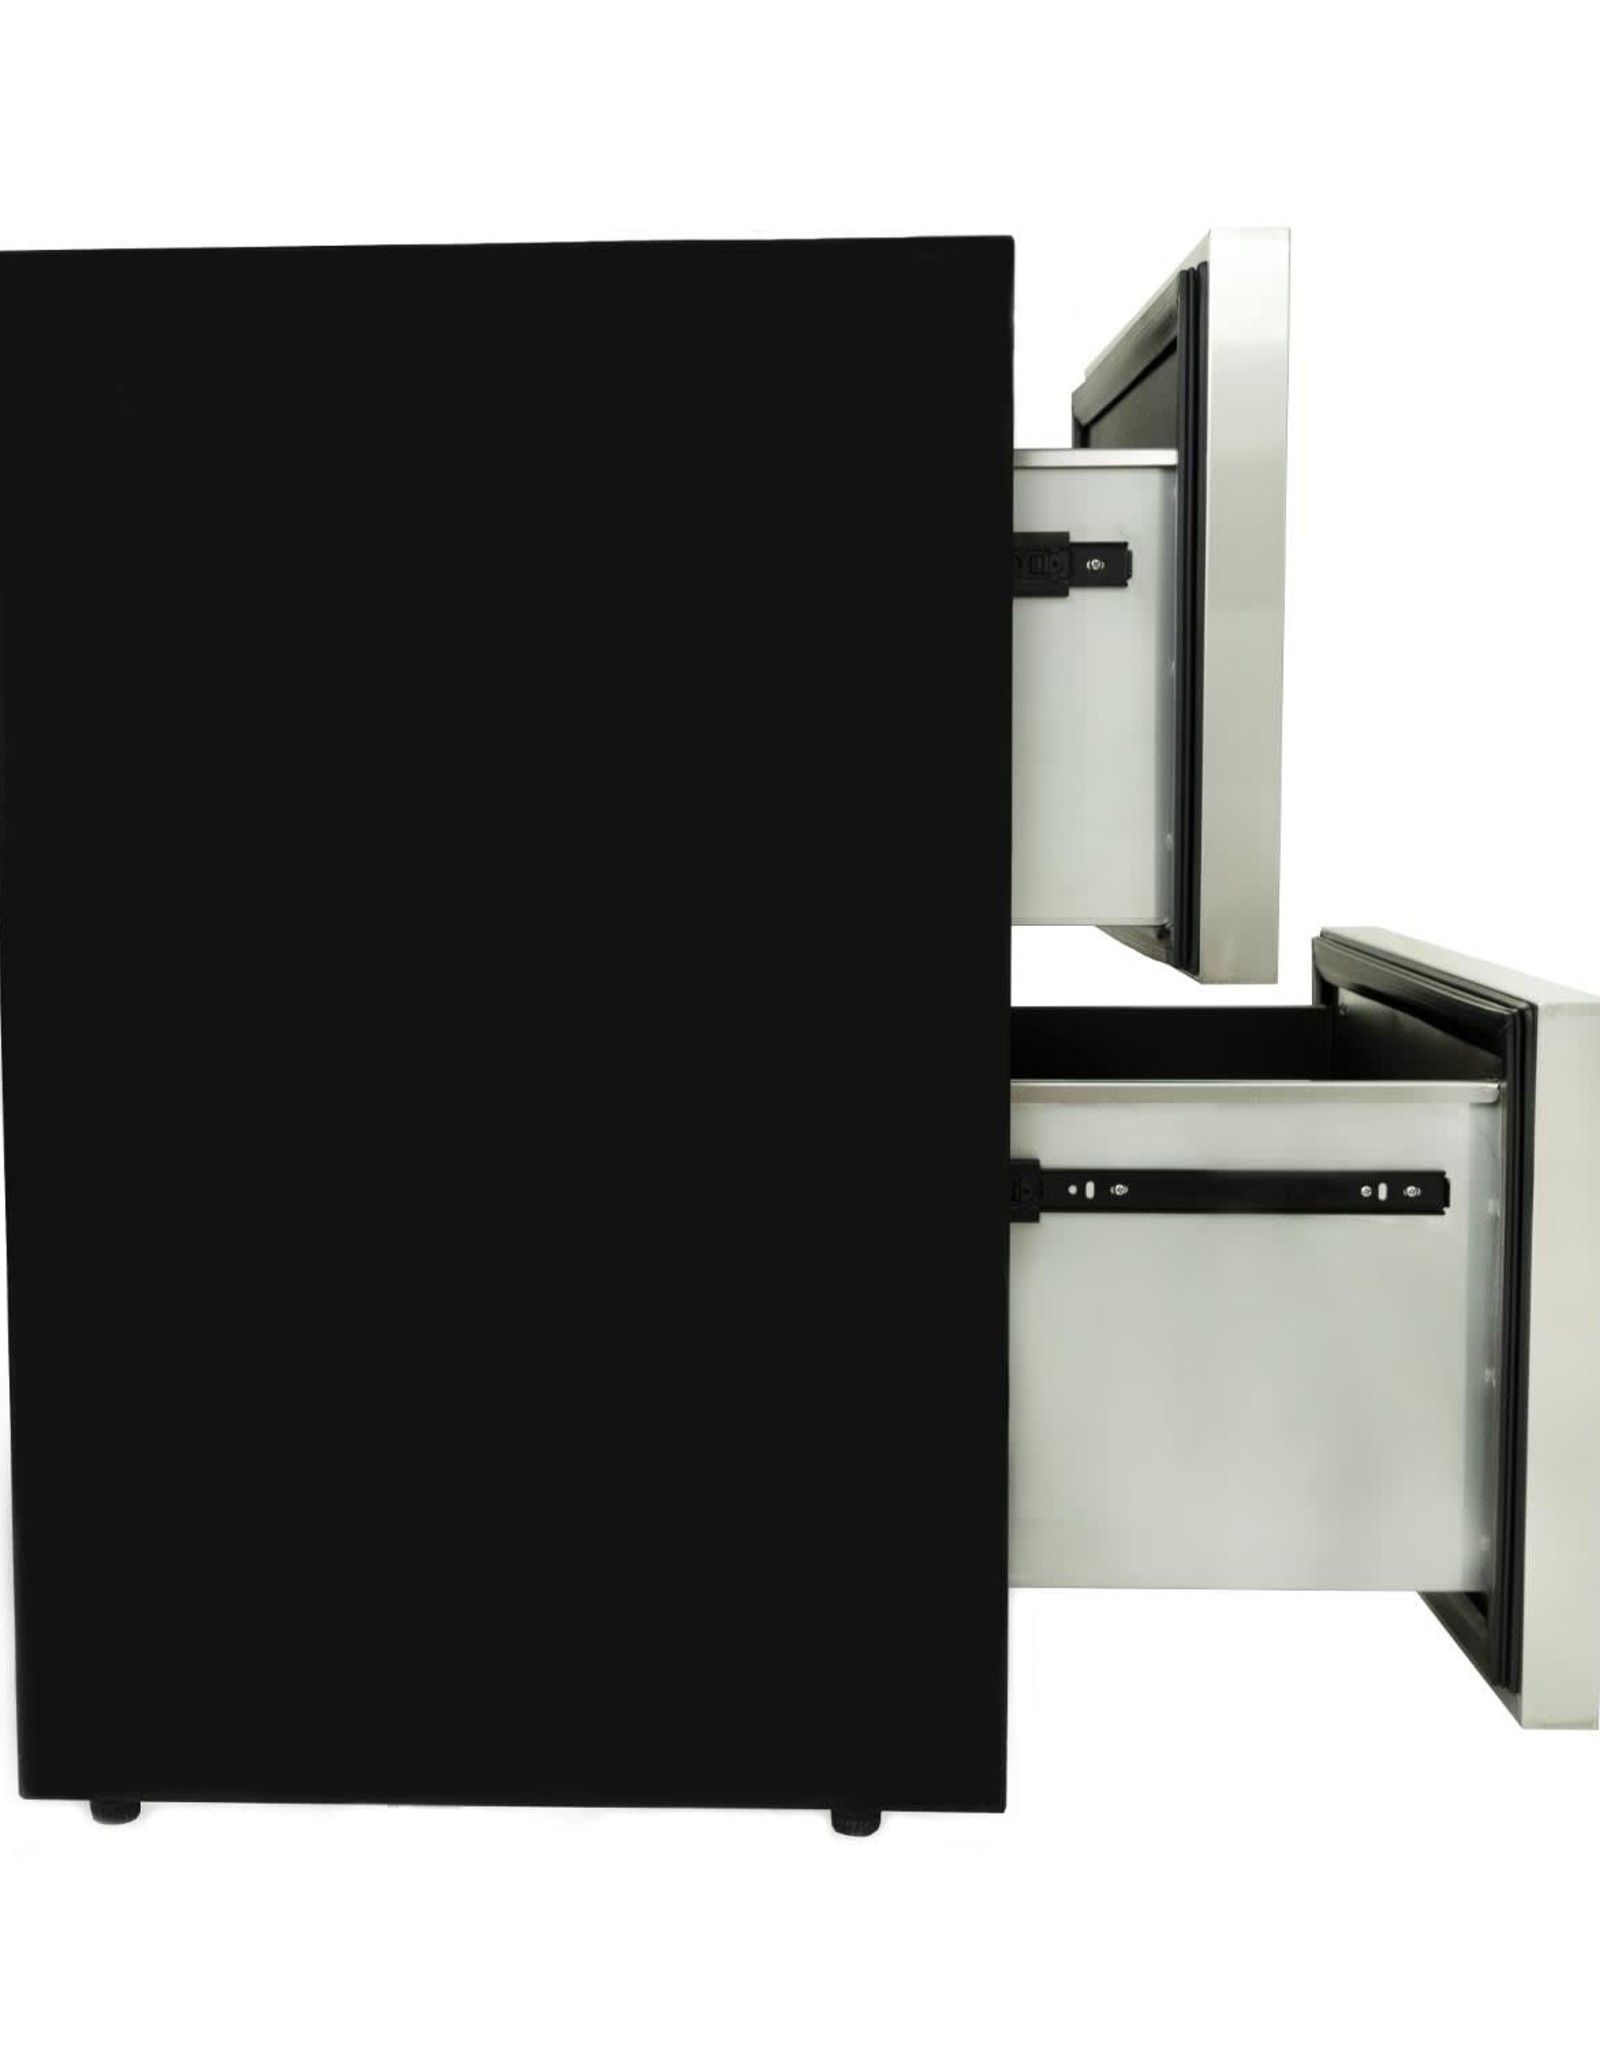 Blaze Outdoor Products Blaze 23.5-Inch 5.1 Cu. Ft. Outdoor Rated Stainless Steel Double Drawer Refrigerator - BLZ-SSRF-DBDR5.1